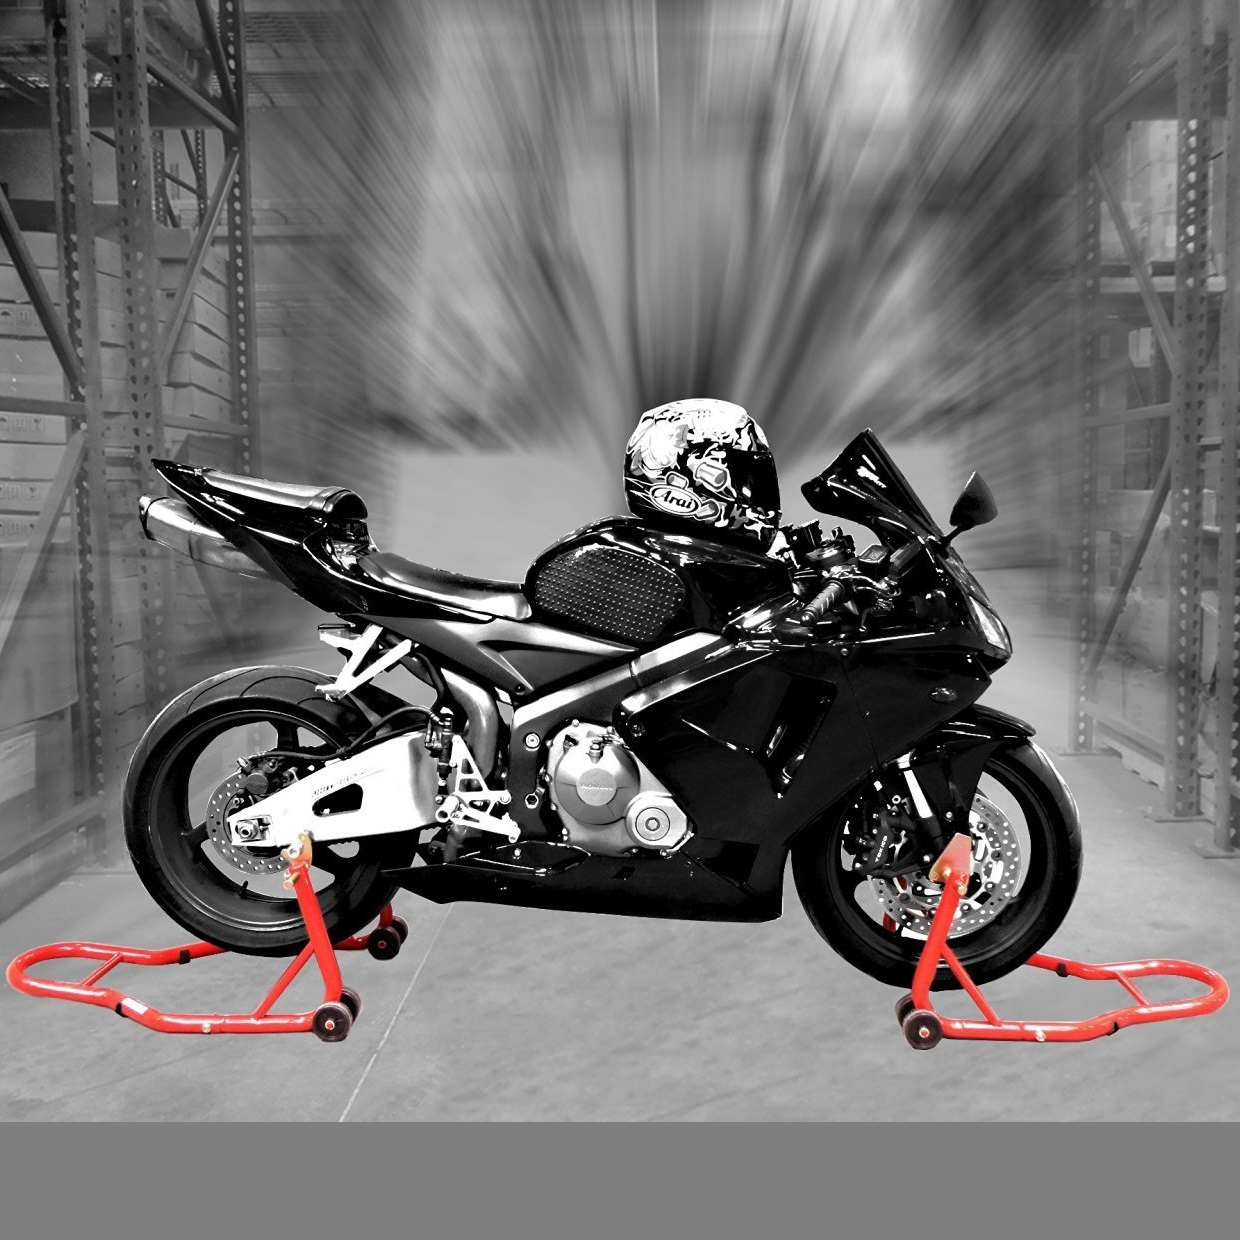 Genssi Motorcycle Stands